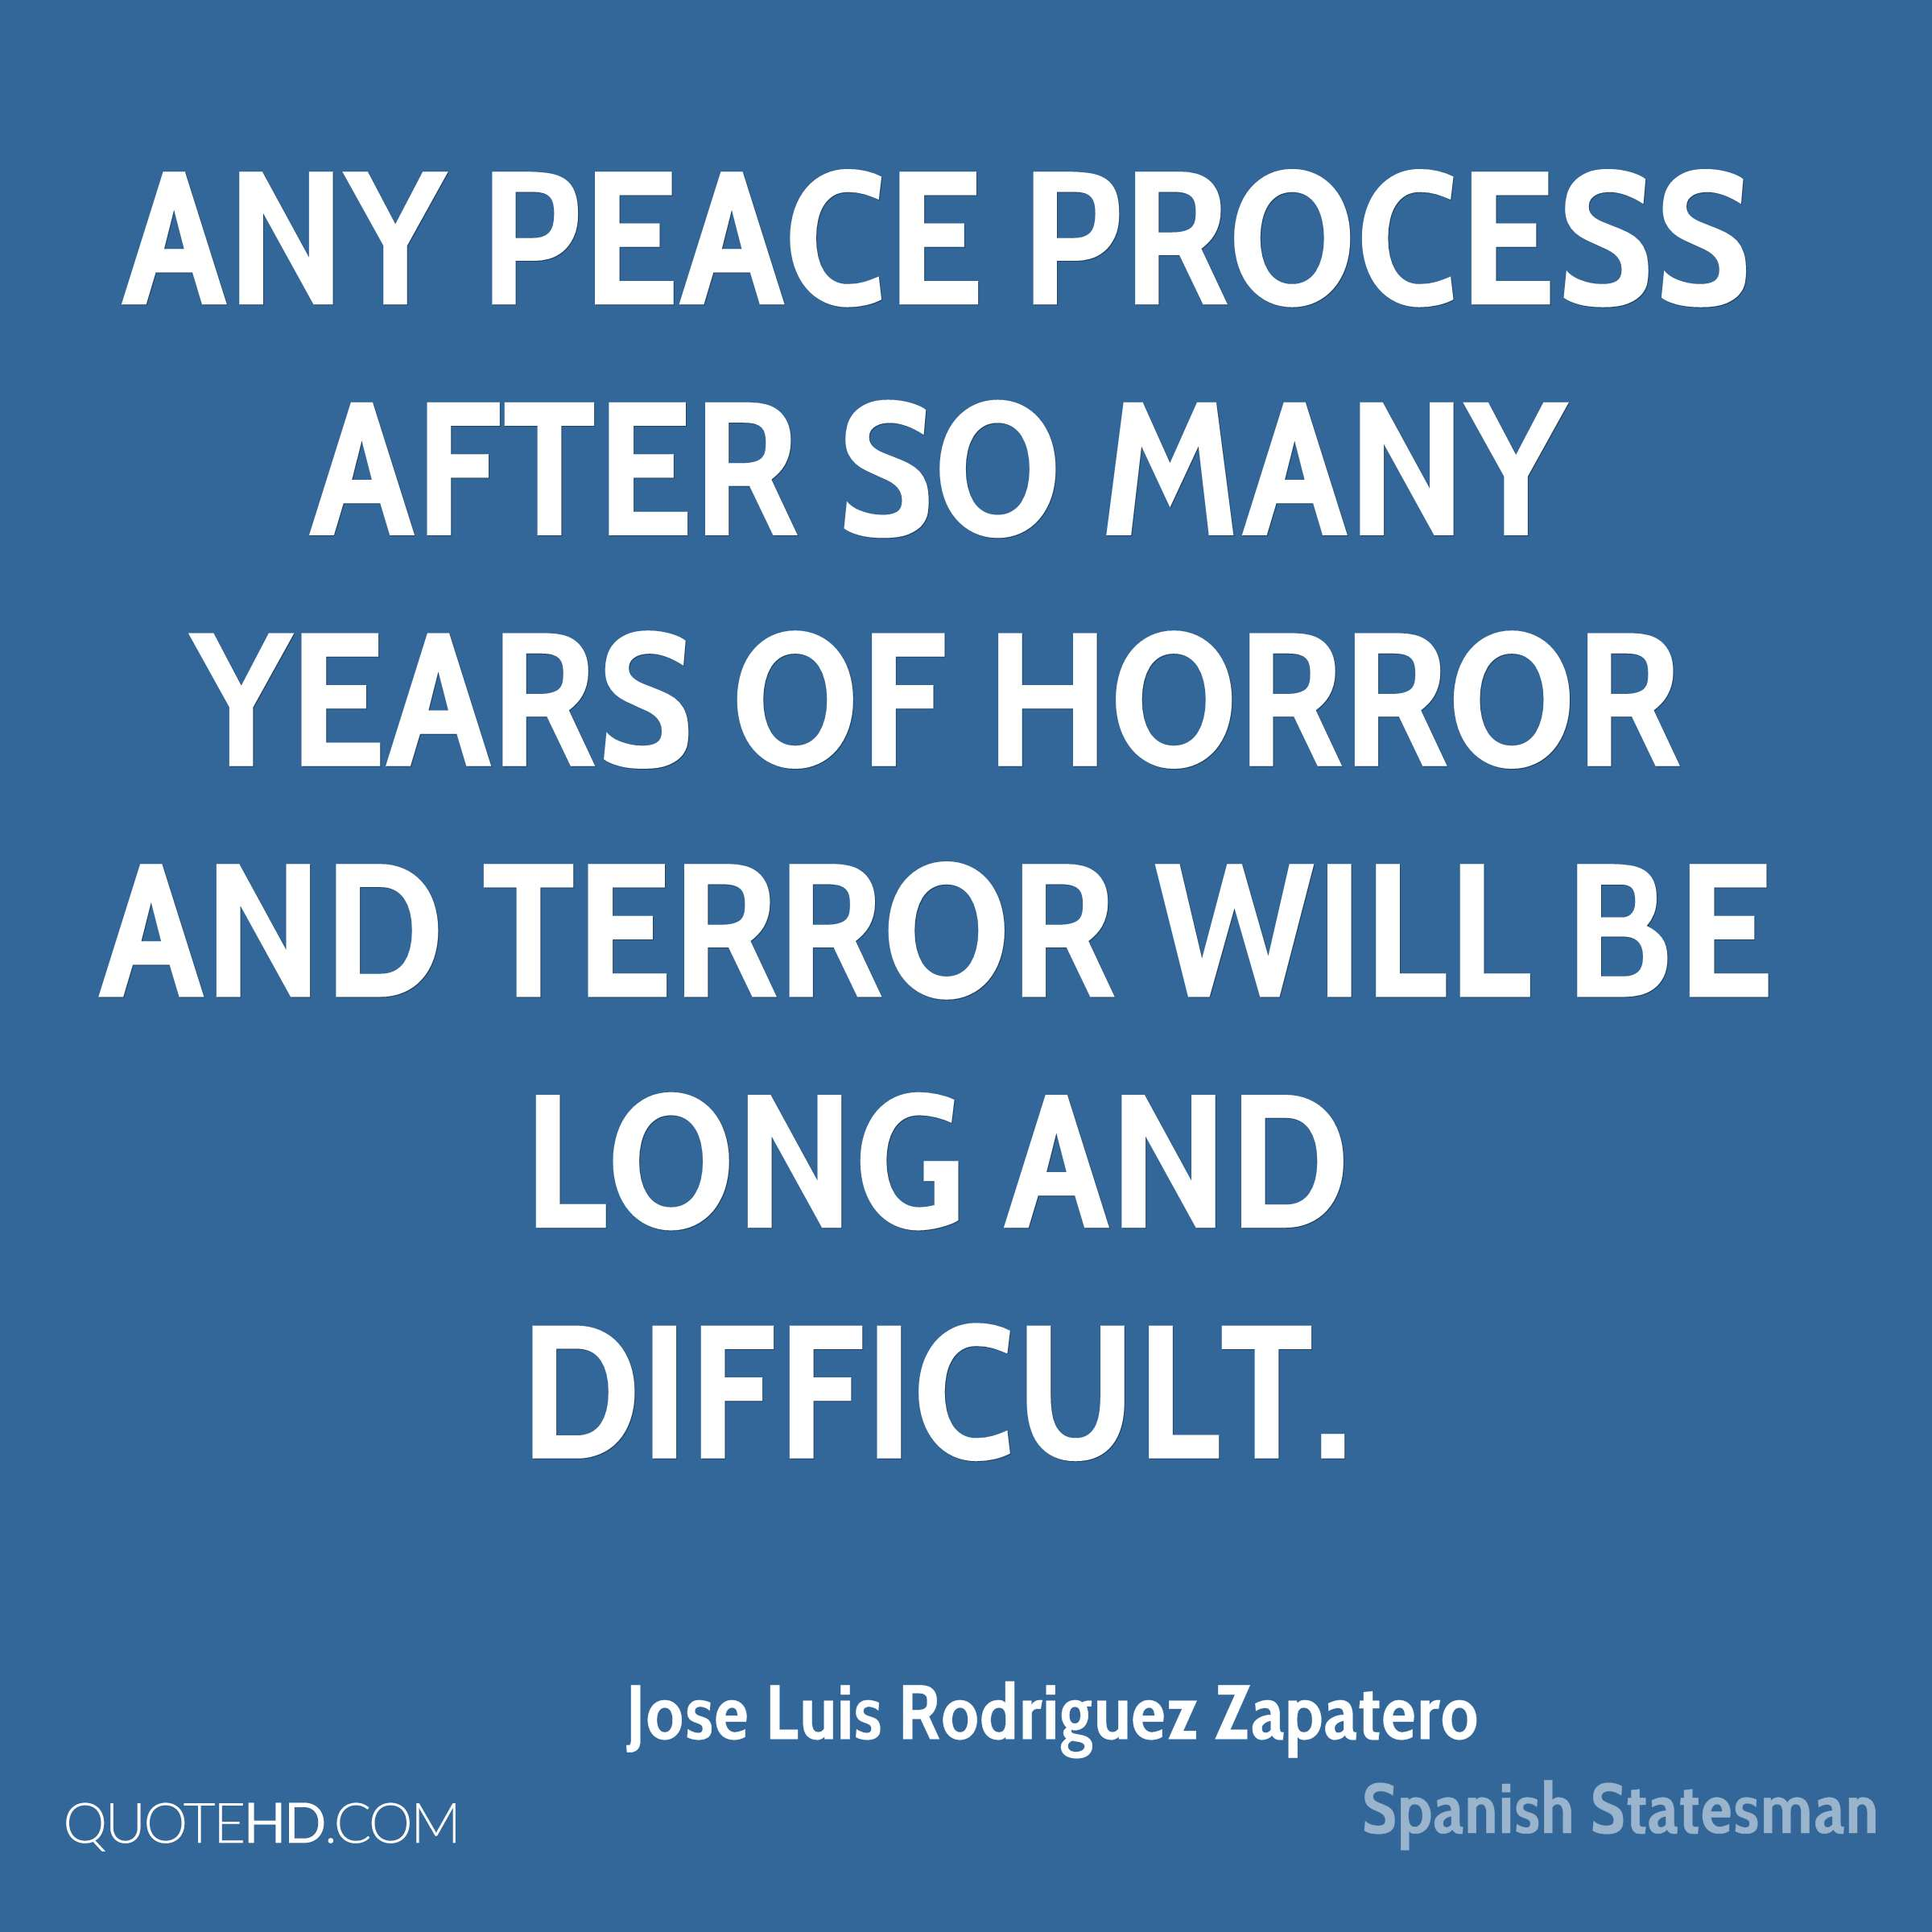 Any peace process after so many years of horror and terror will be long and difficult.